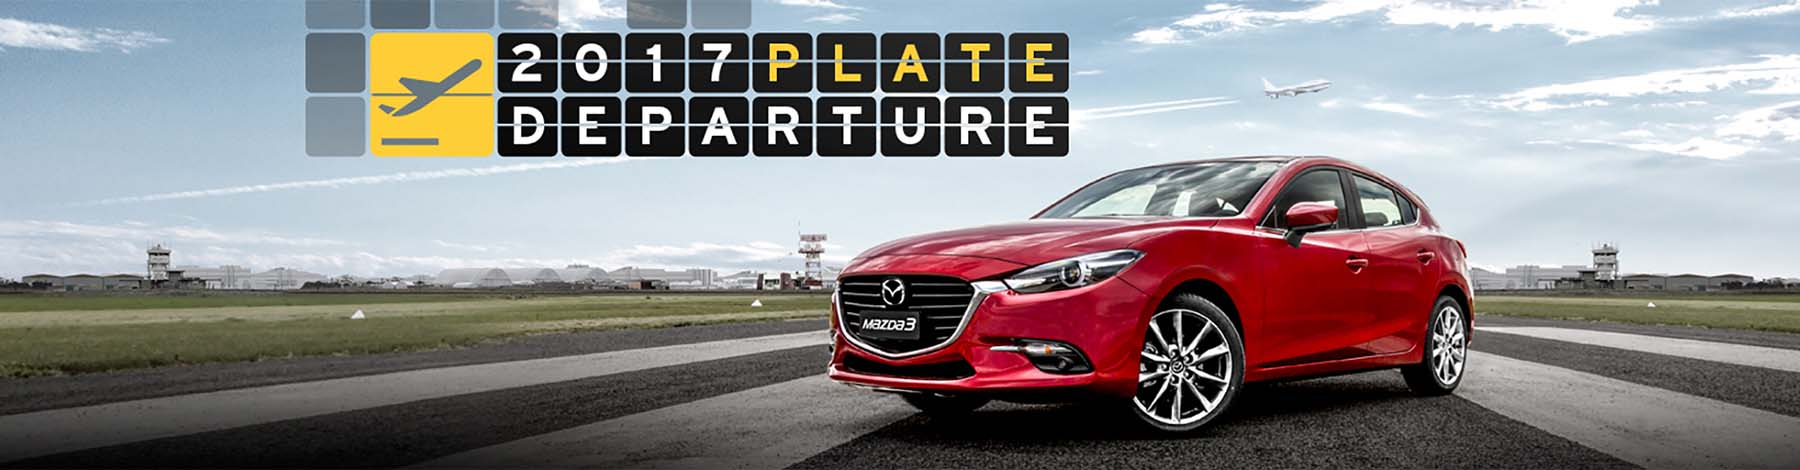 mazda_banner_special